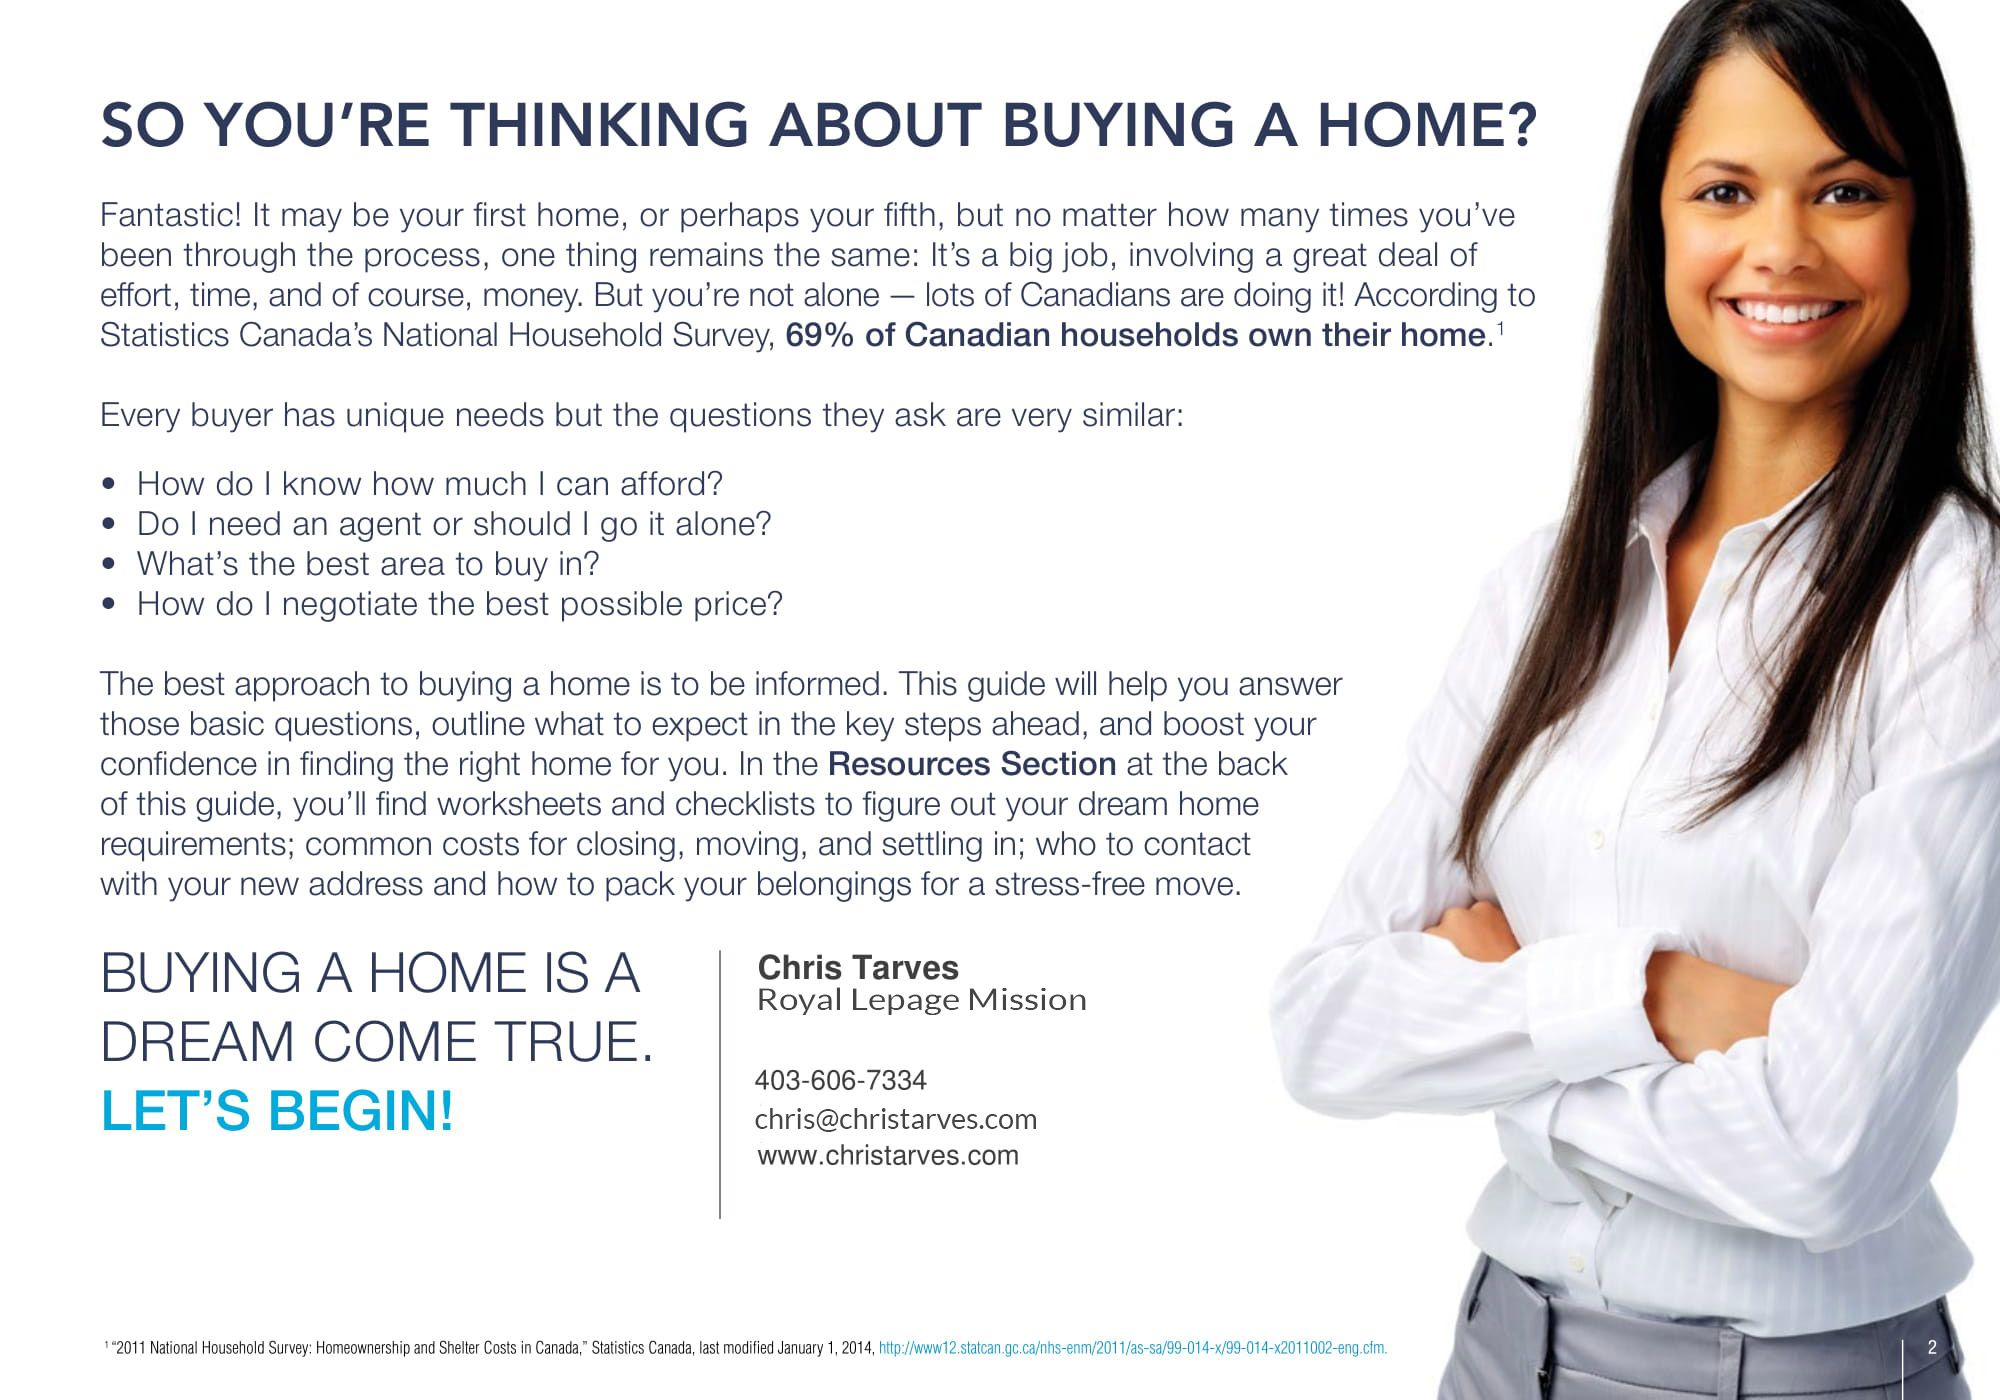 Christ Tarves Thinking About Buying A Home